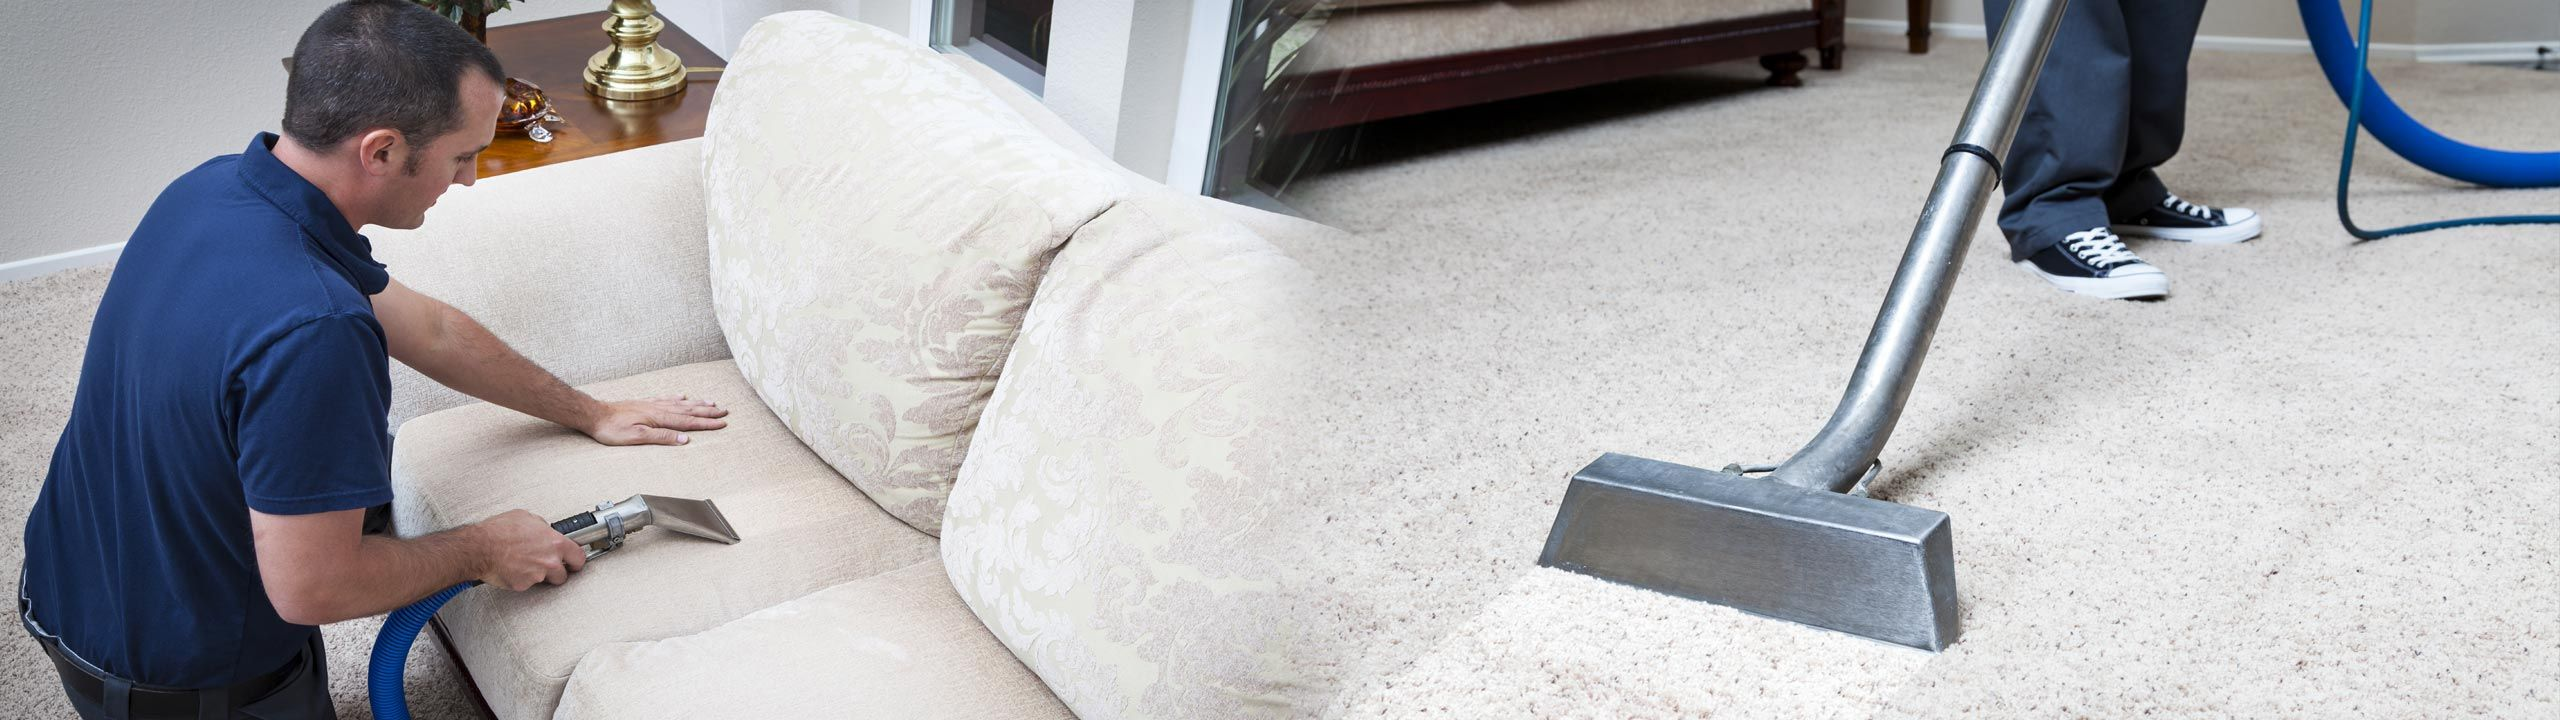 Carpet Cleaning Broward County Florida Steam Clean Upholstery Rugs Tile Grout Cleaners Sofa Cleaning Services Cleaning Upholstery Carpet Cleaning Hacks